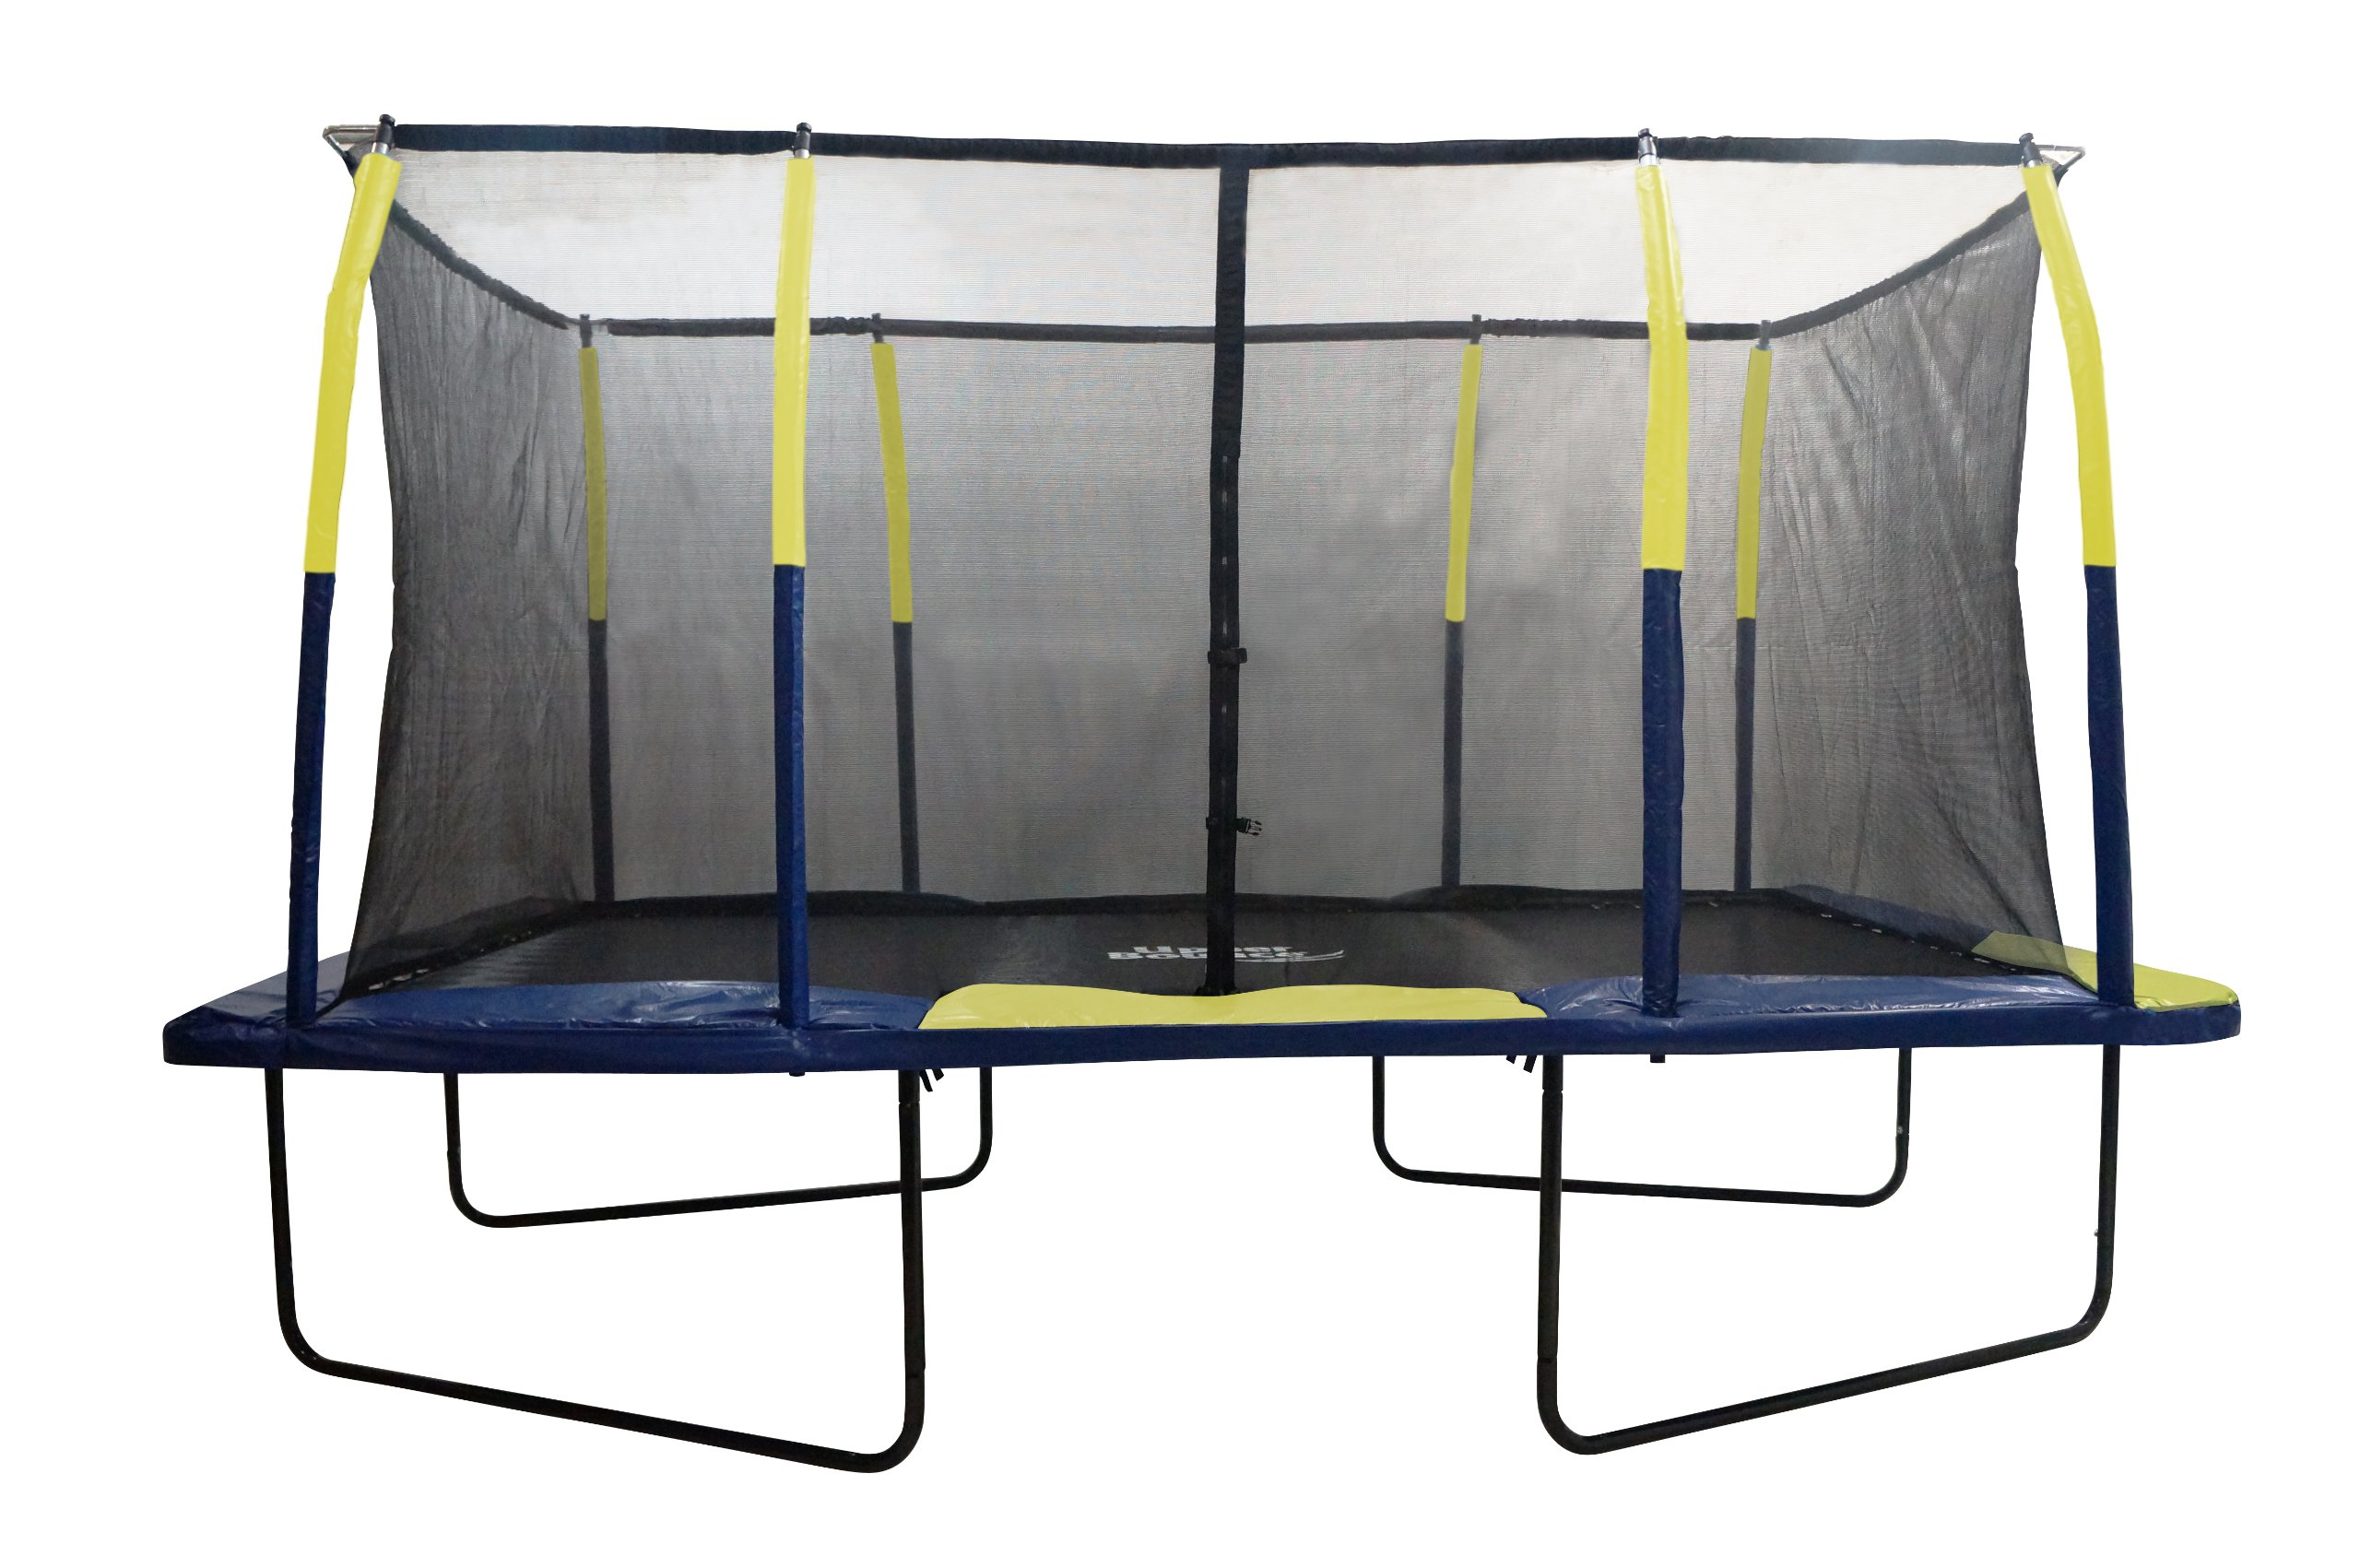 Upper Bounce Easy Assemble Spacious Rectangular Trampoline with Fiber Flex Enclosure Feature, 9 x 15-Feet by Upper Bounce